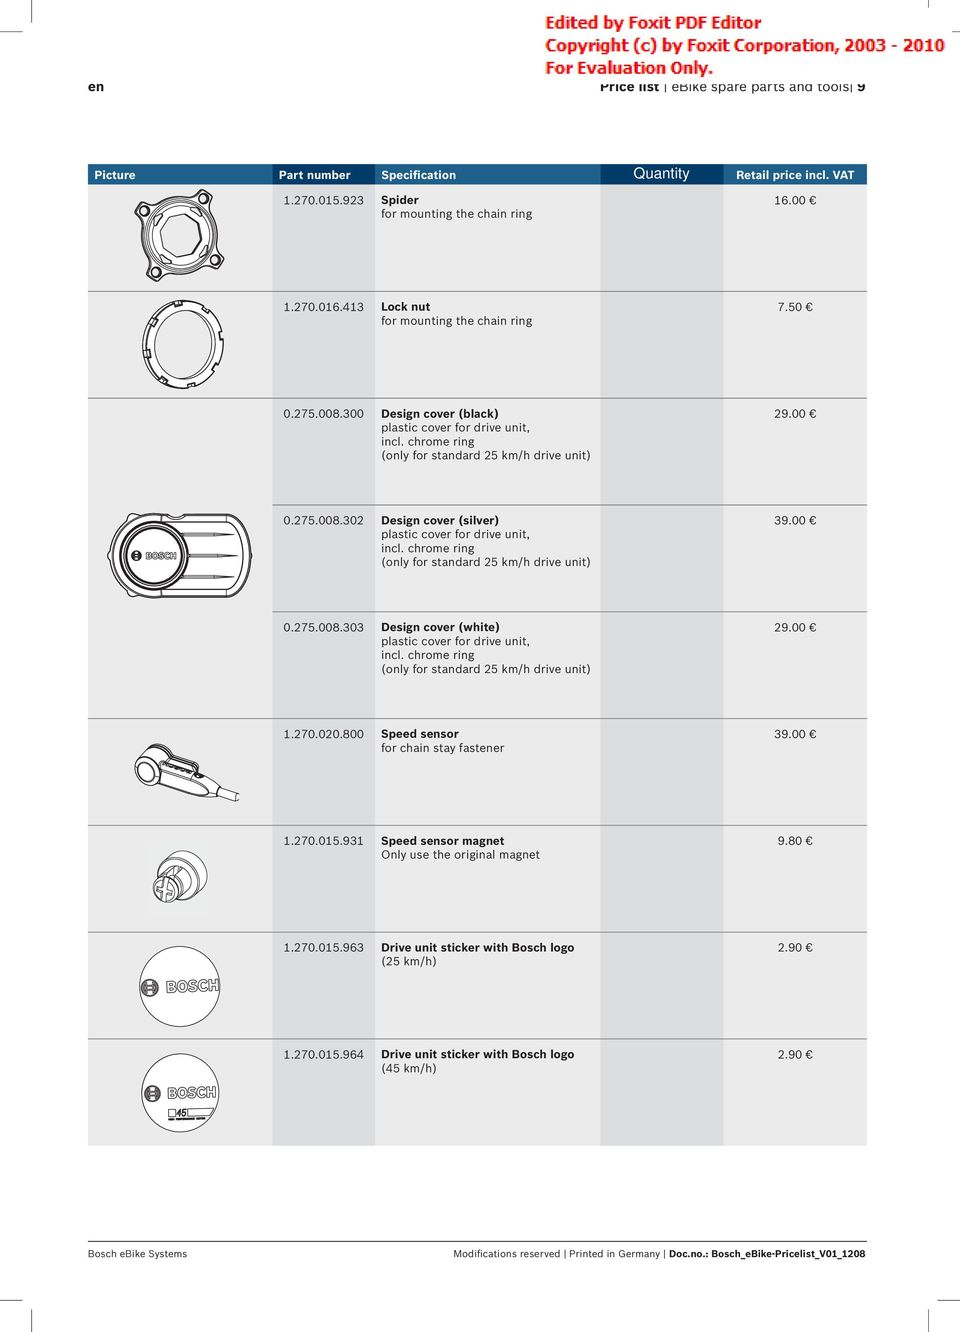 Bosch Ebike Systems Price List I Spare Parts And Tools Pdf Spannfixcircuitboardholder Chrome Ring Only For Standard 25 Km H Drive Unit 3900 0275